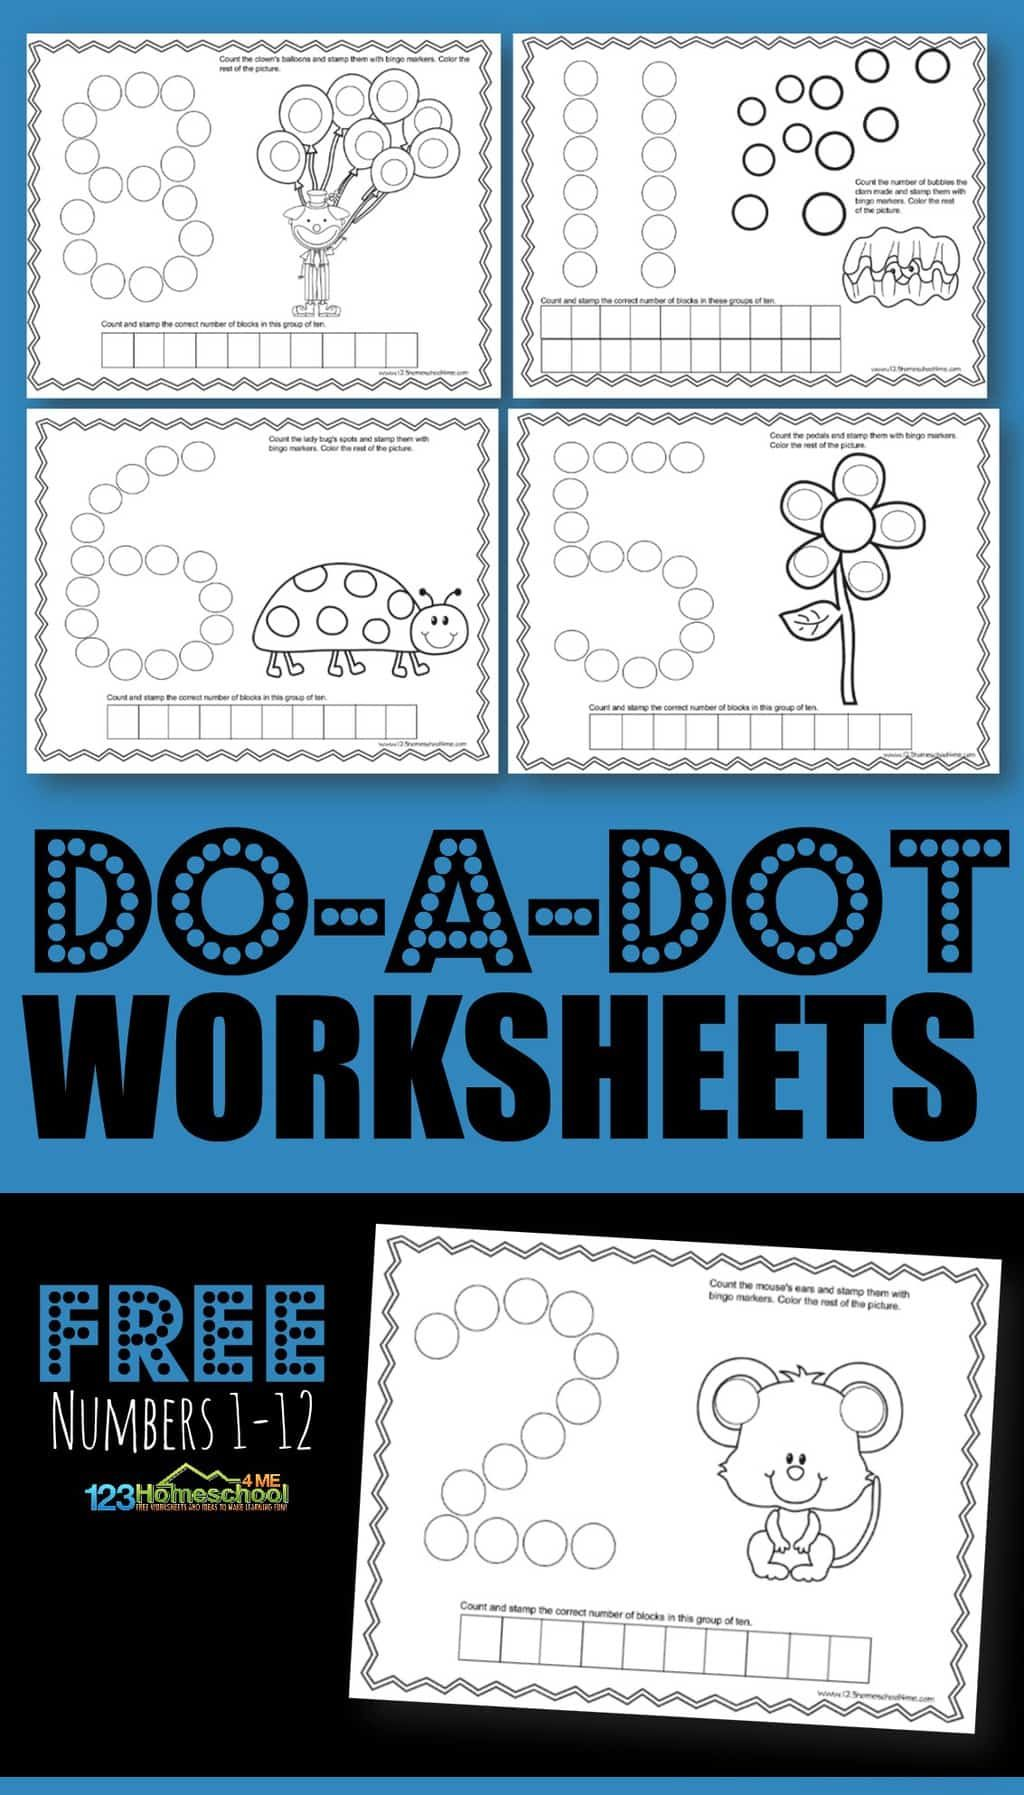 16 Best Printable Multiplication Worksheets 0 12 Images On